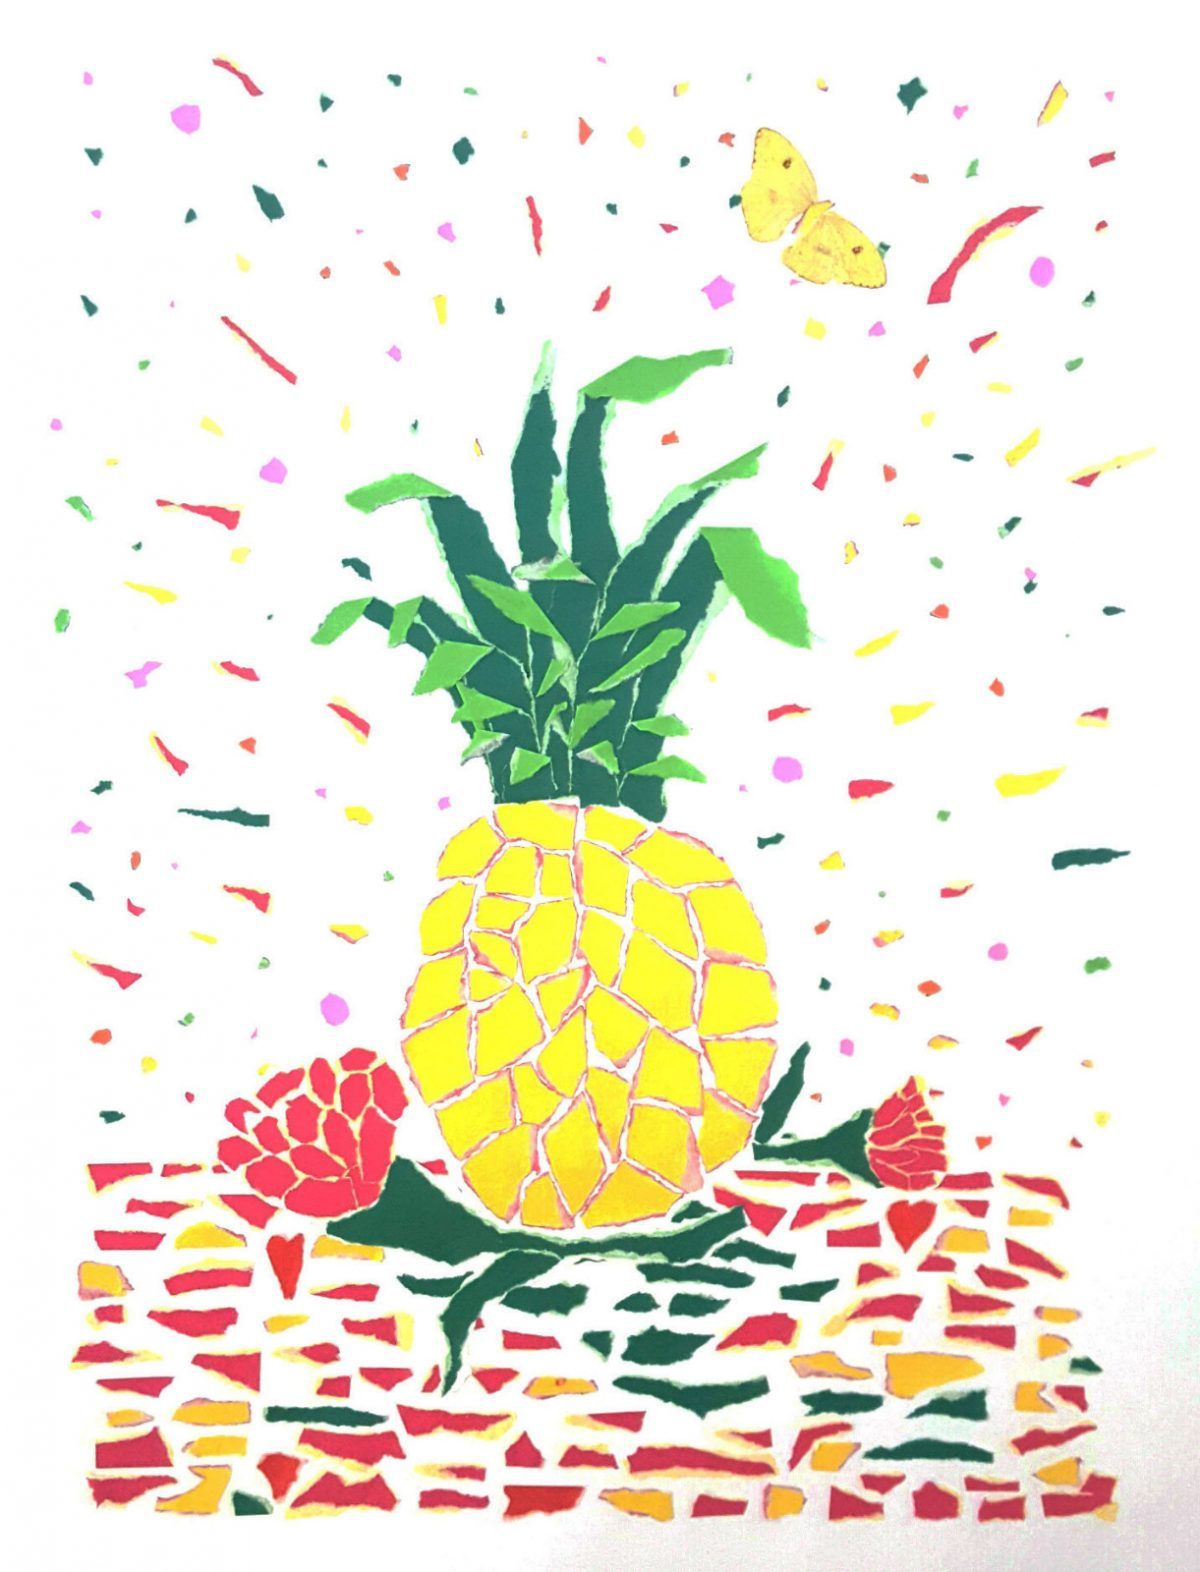 Pineapple Party | Art wedding anniversary gift | Mishkalo Bridal Registry